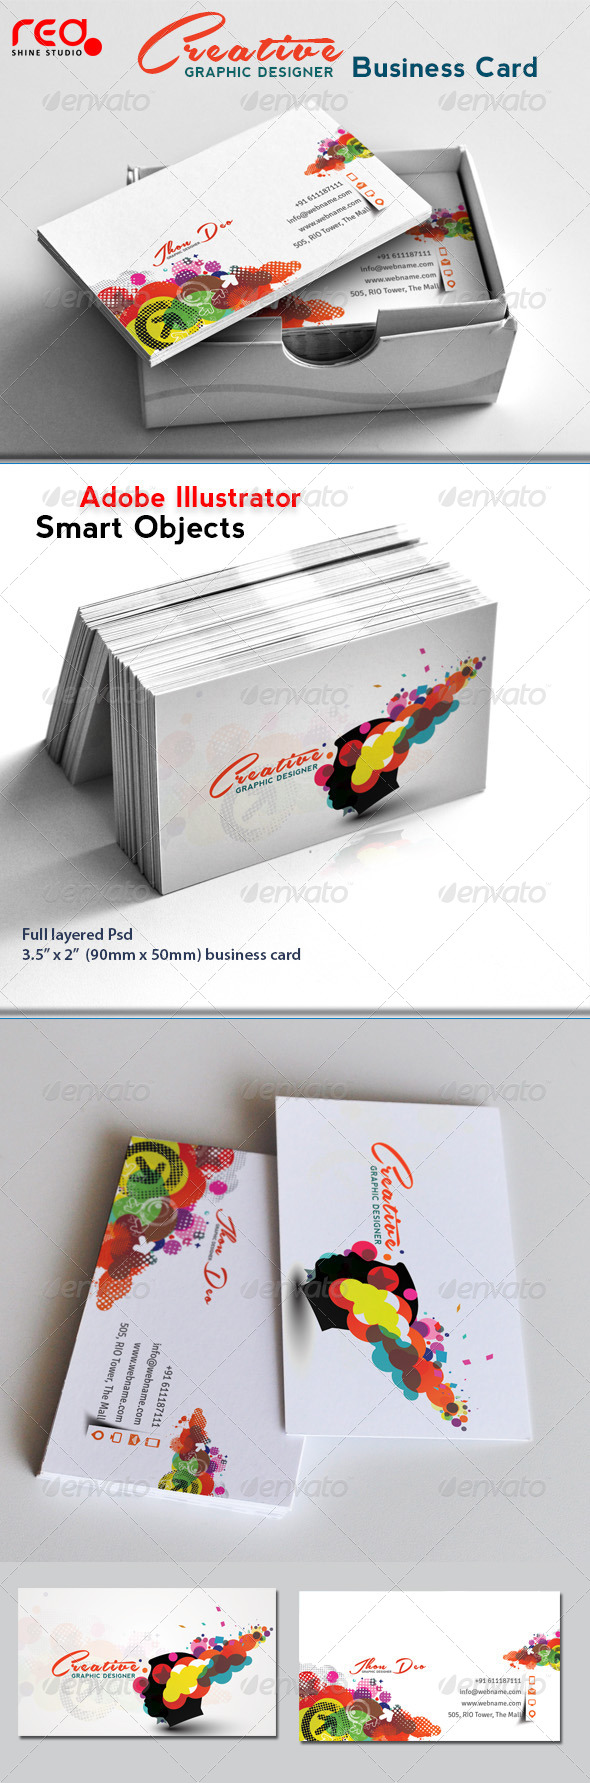 Creative Elegant Business Card - Creative Business Cards